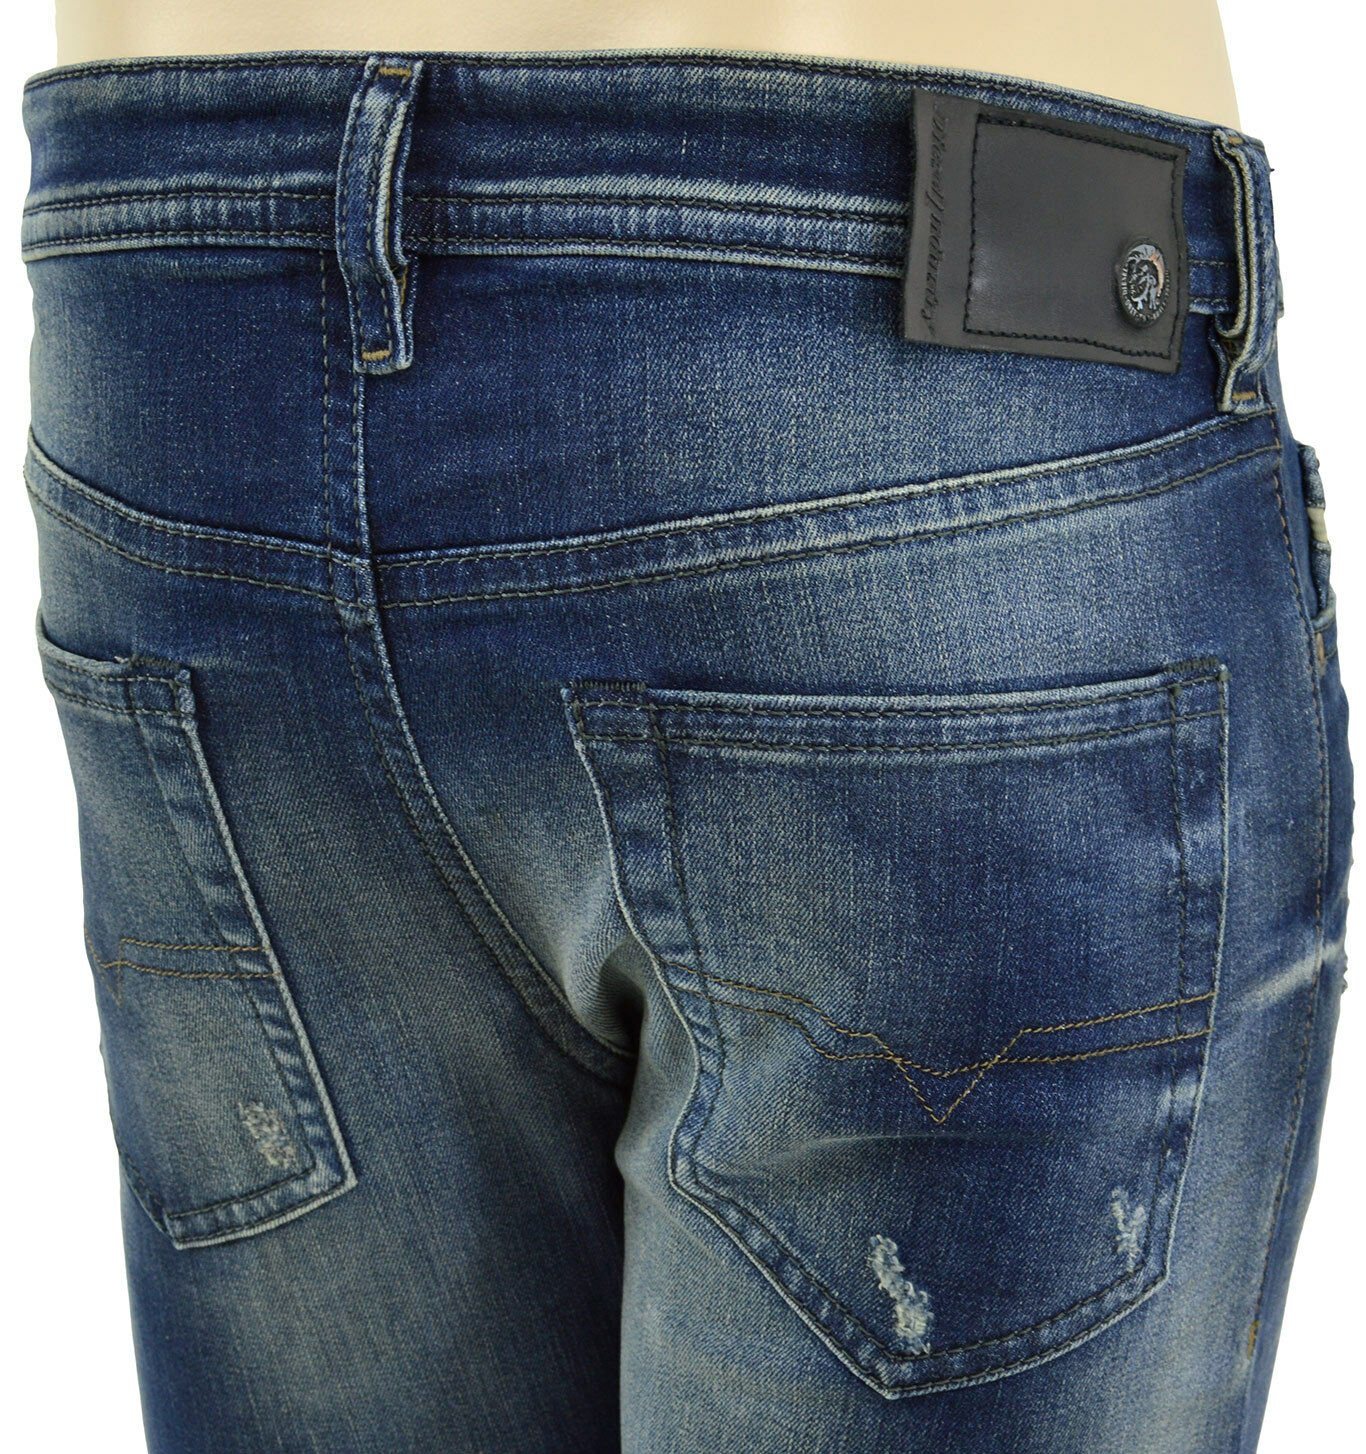 DIESEL JEANS bluee Washed BUSTER 0833F Mens Denim Size 32 NEW COLLECTION